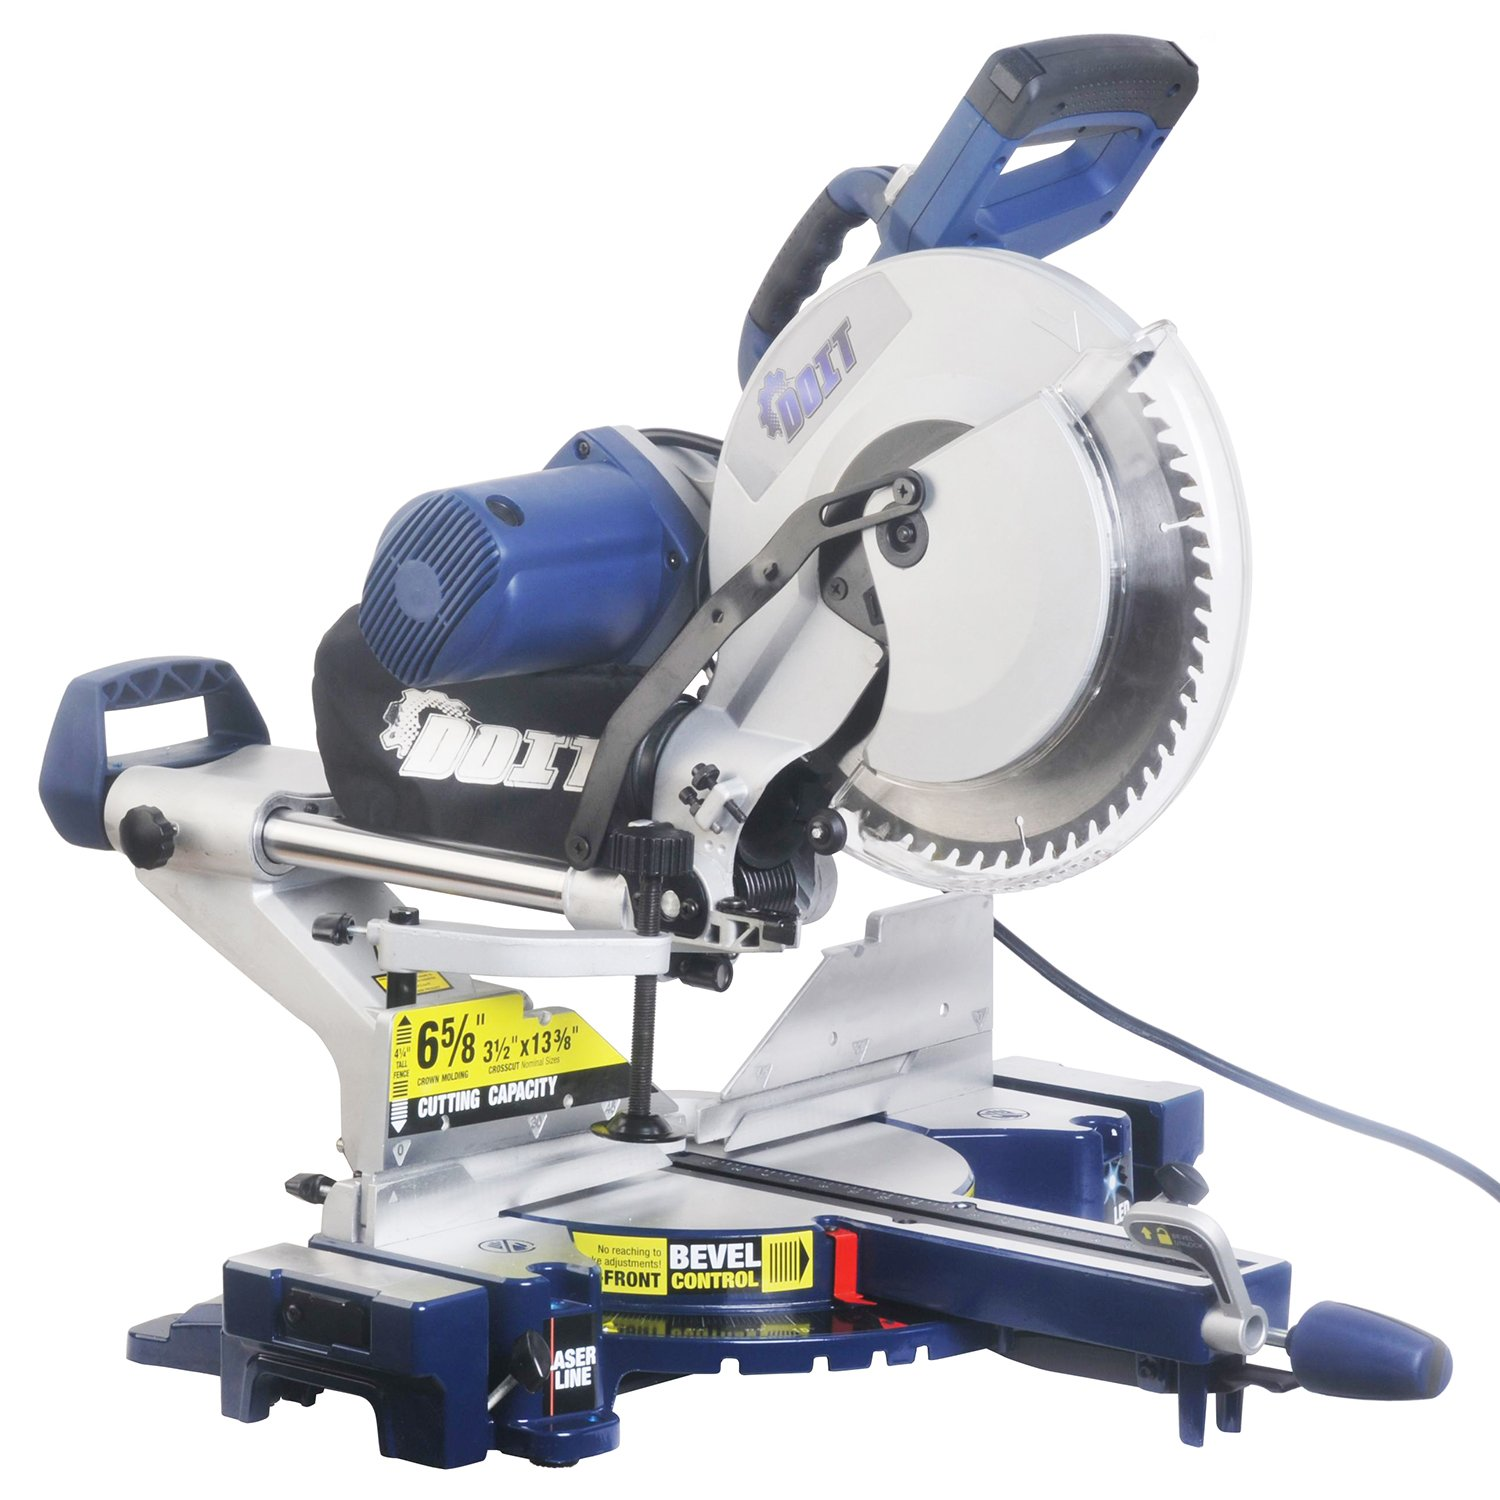 sliding compound miter saw. doitpower 12-inch dual bevel sliding compound miter saw with laser and led work light - amazon.com